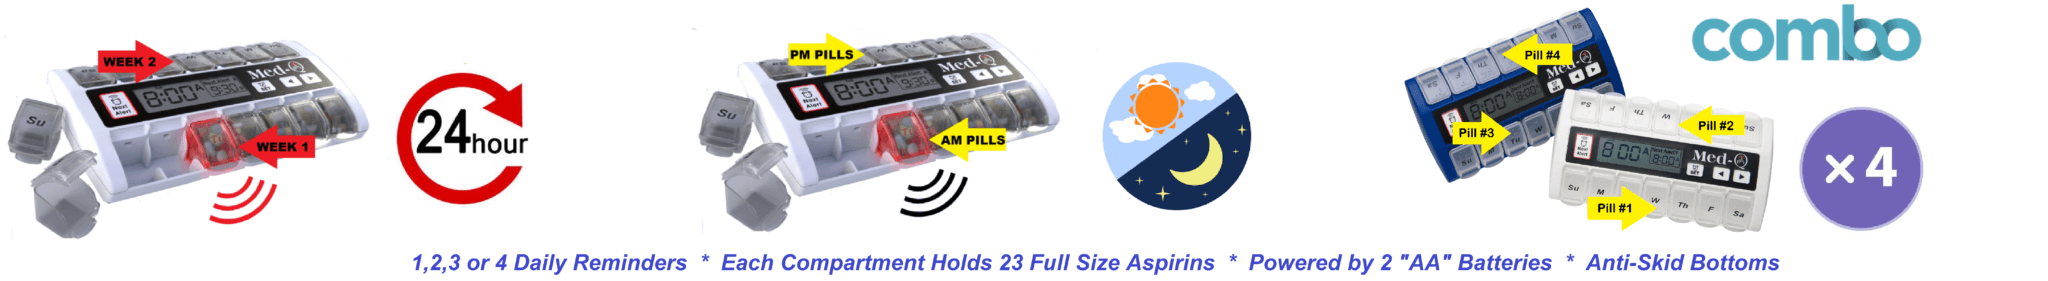 Medication reminder alarm system